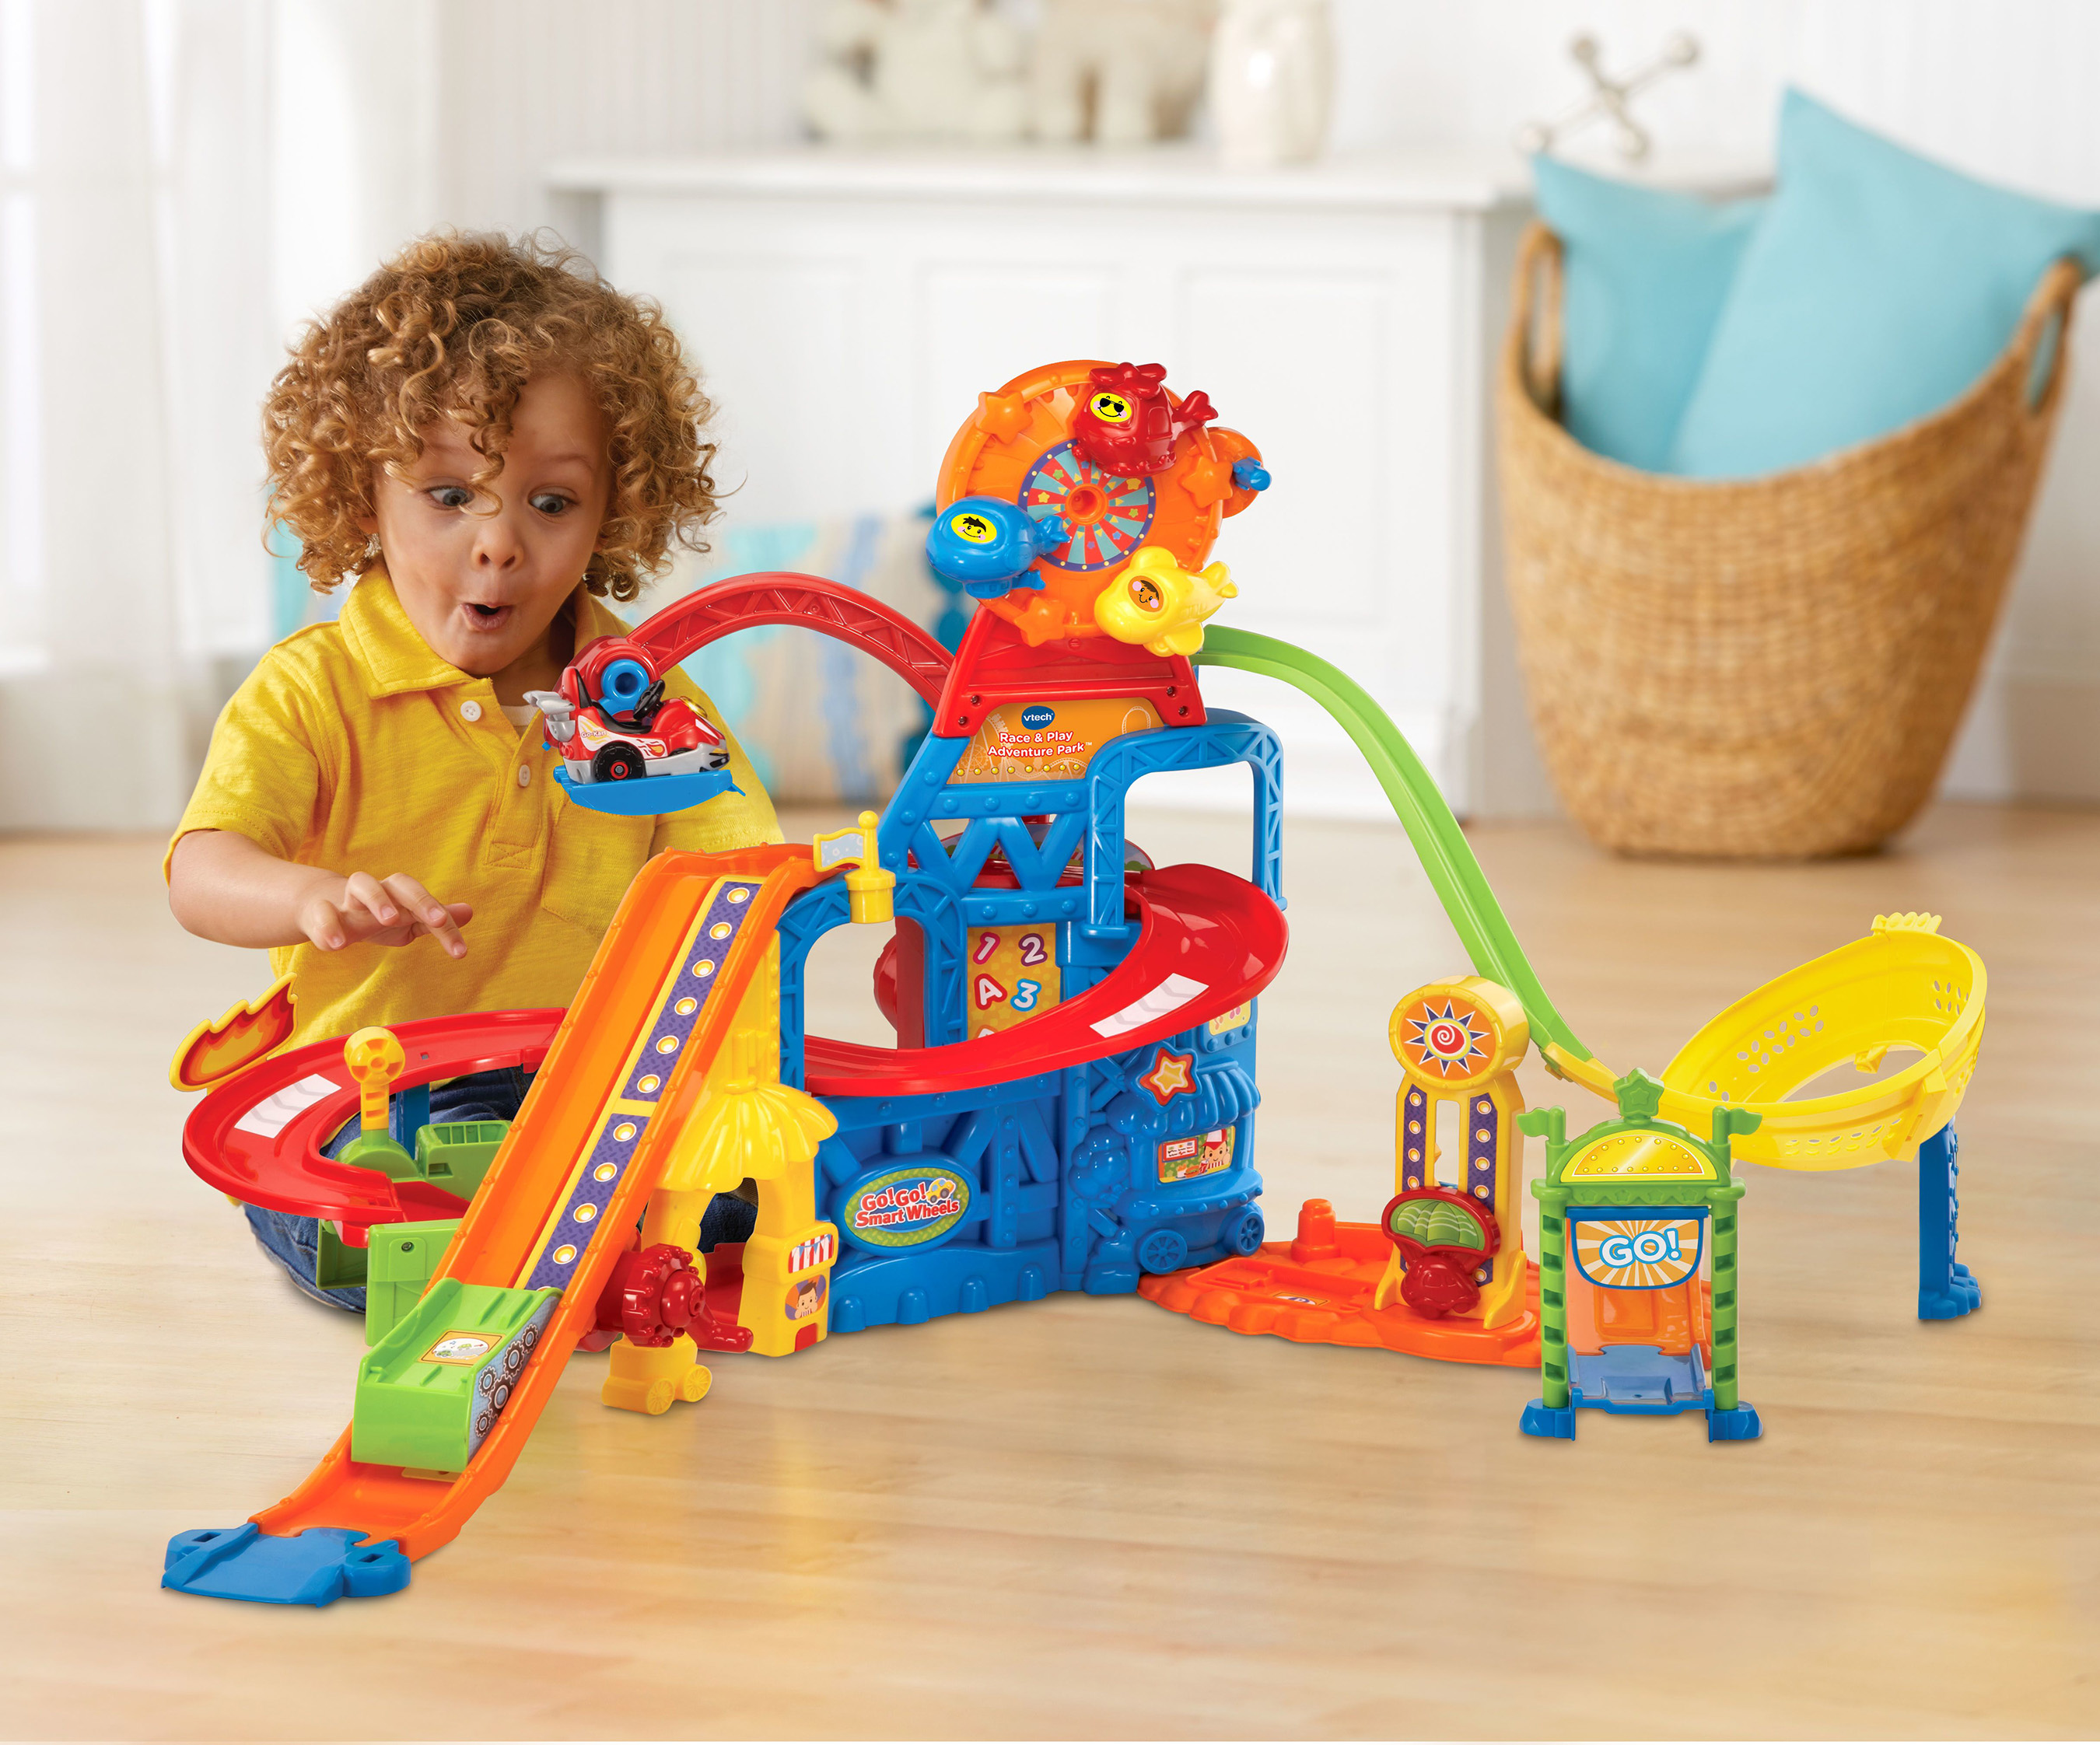 VTech Sparks Children s Imaginations with Engaging New Go Go